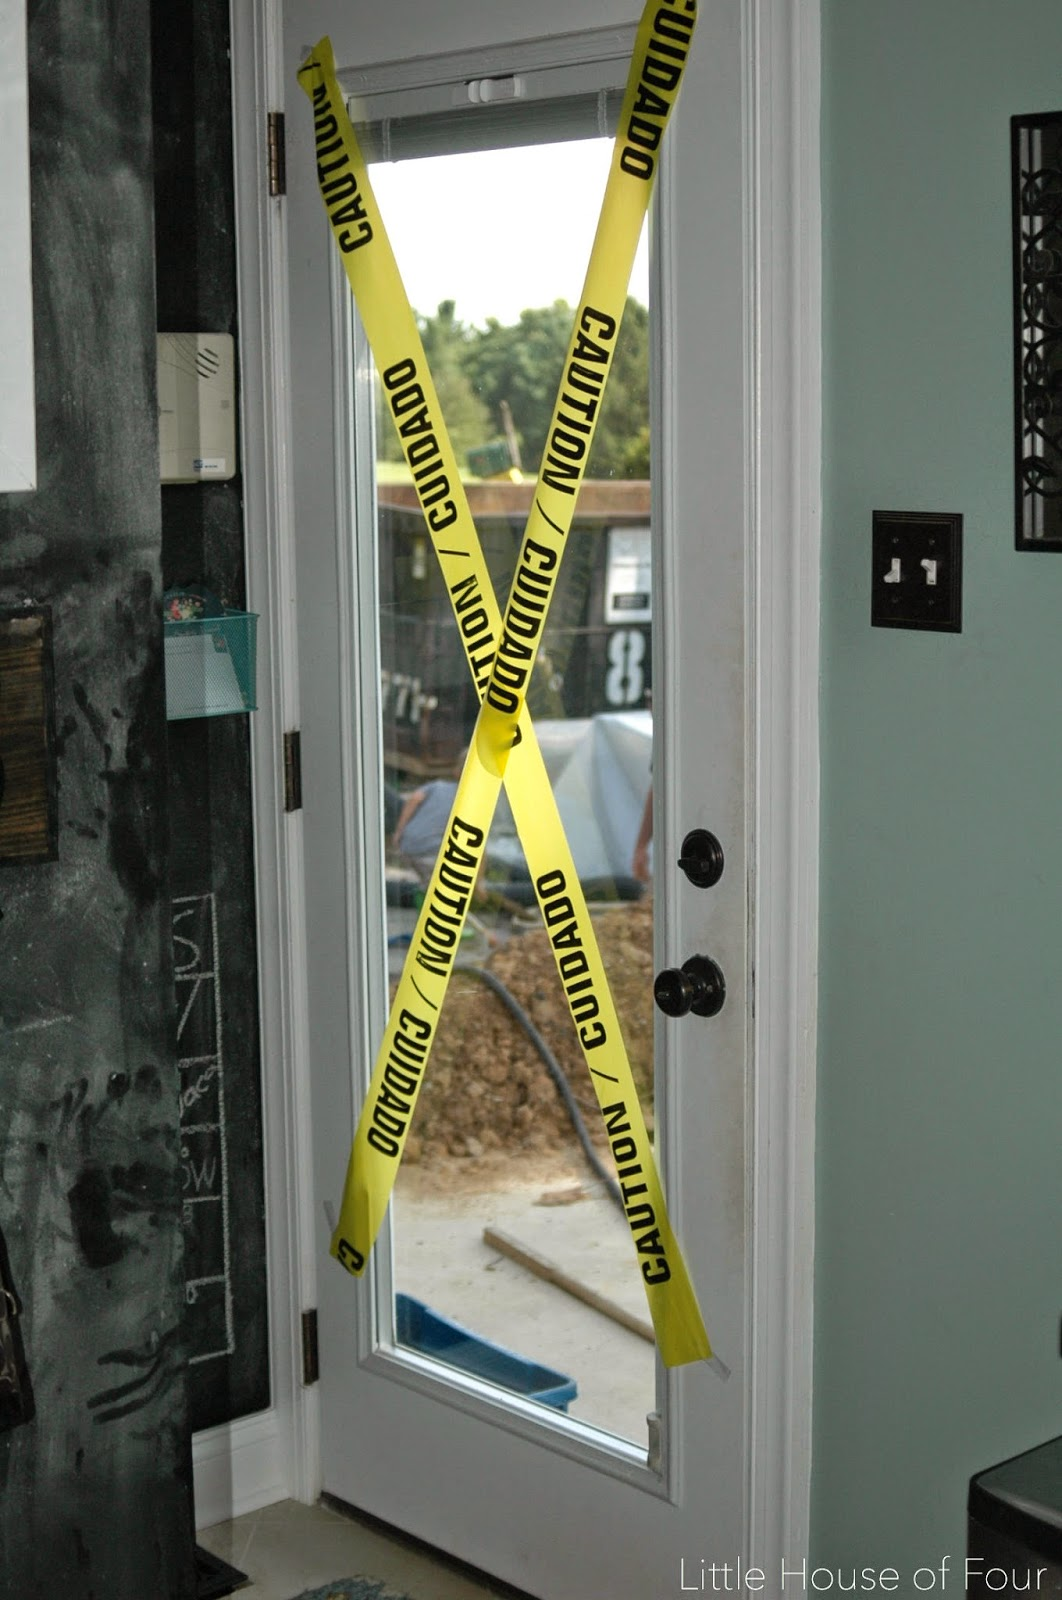 Construction tape on doors